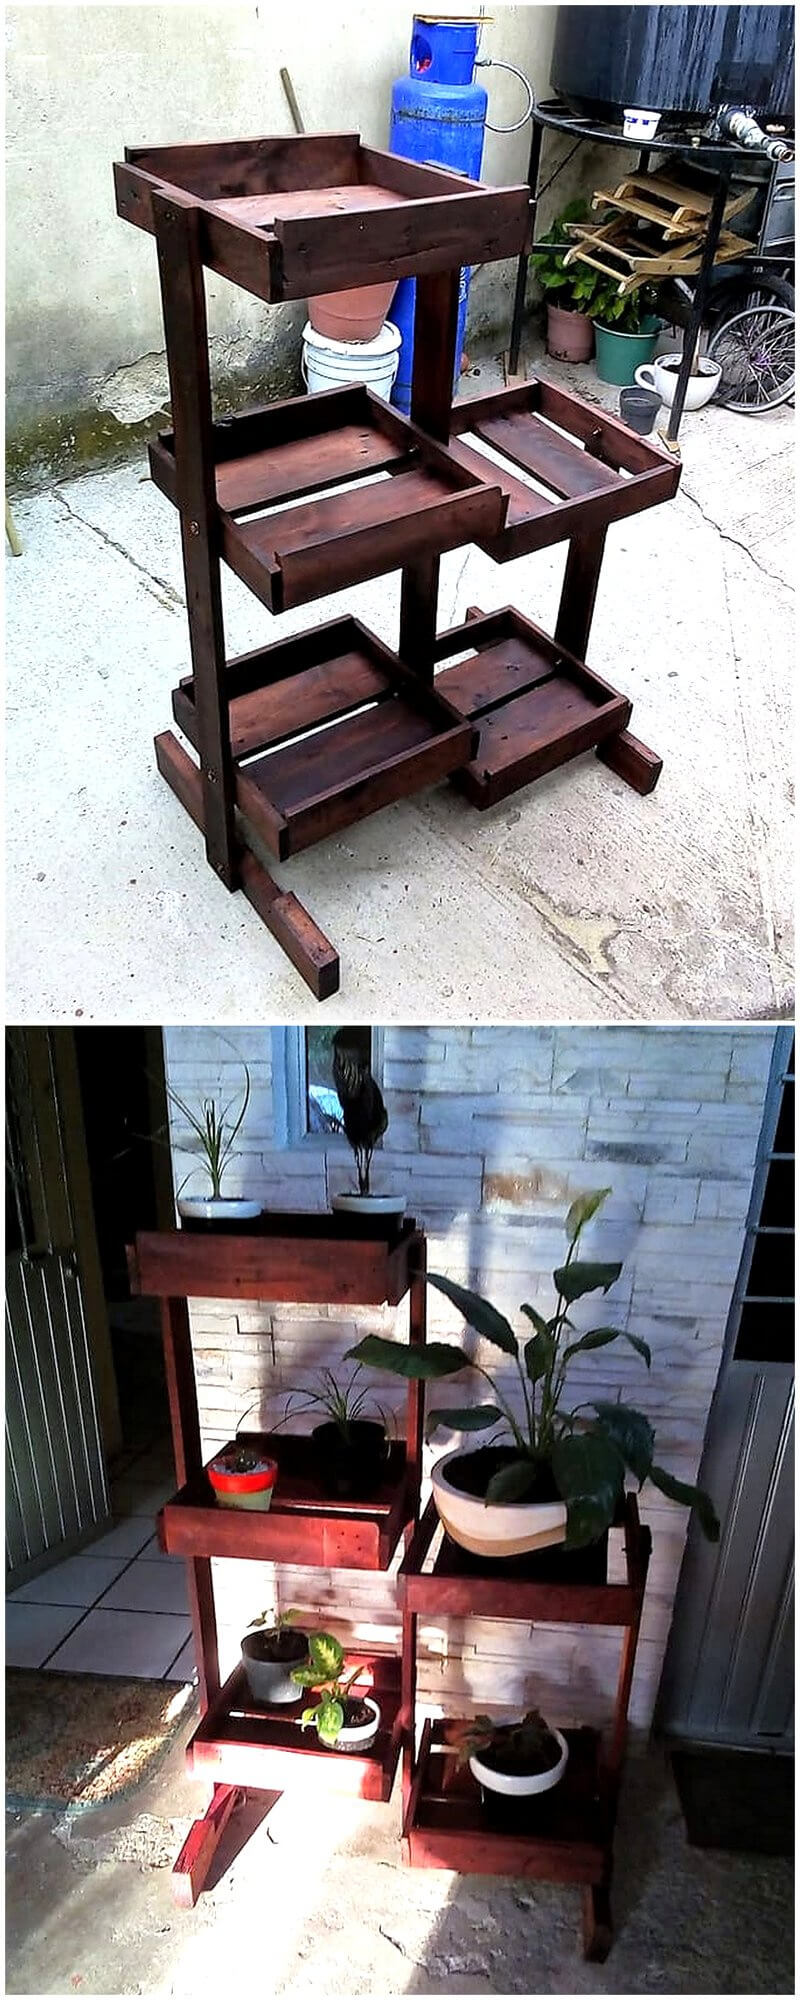 recycled wood pallet pots stand planter